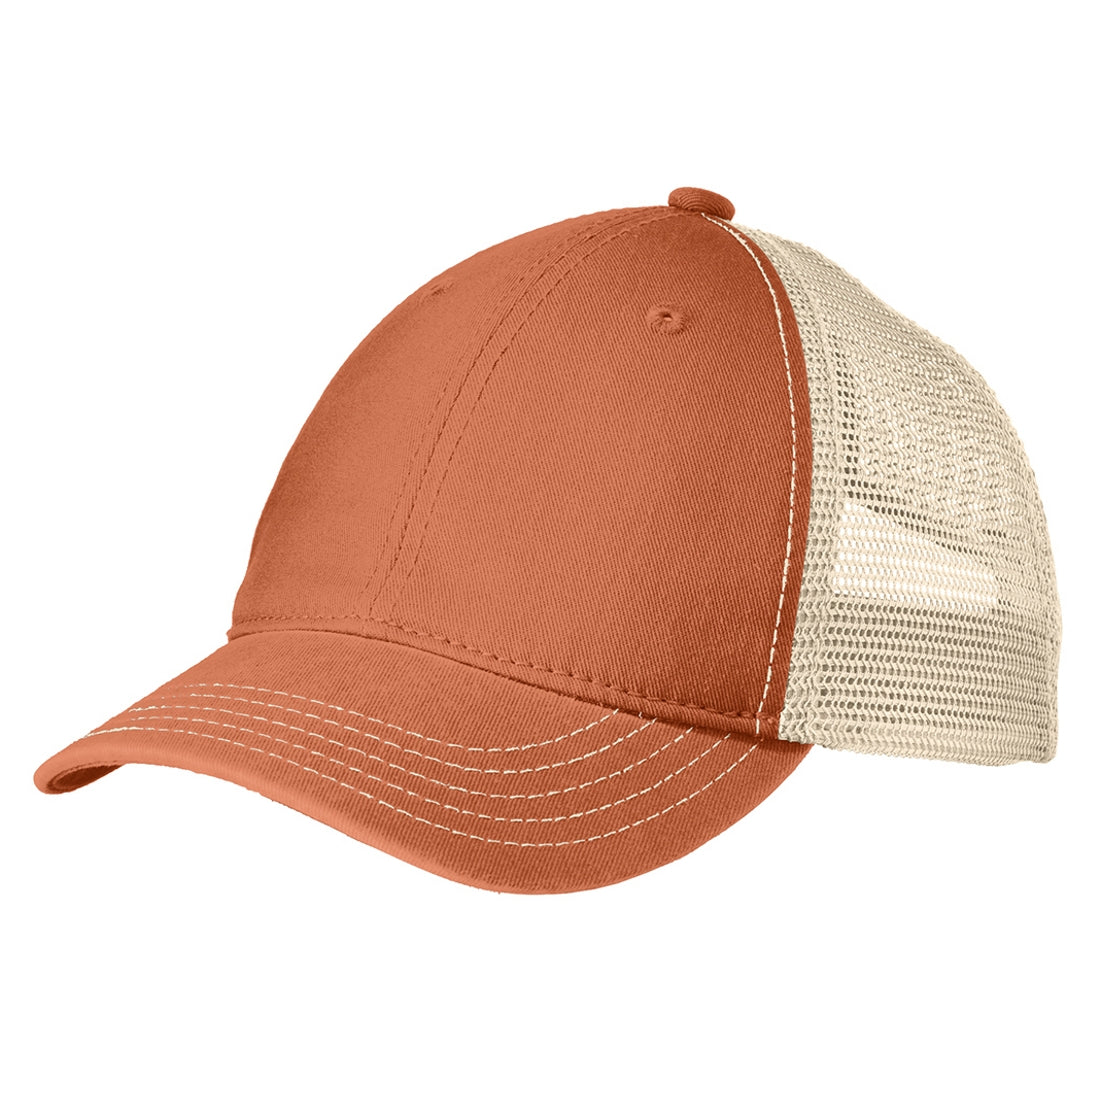 Men's Super Soft Mesh Back Cap - Burnt Orange/ Stone